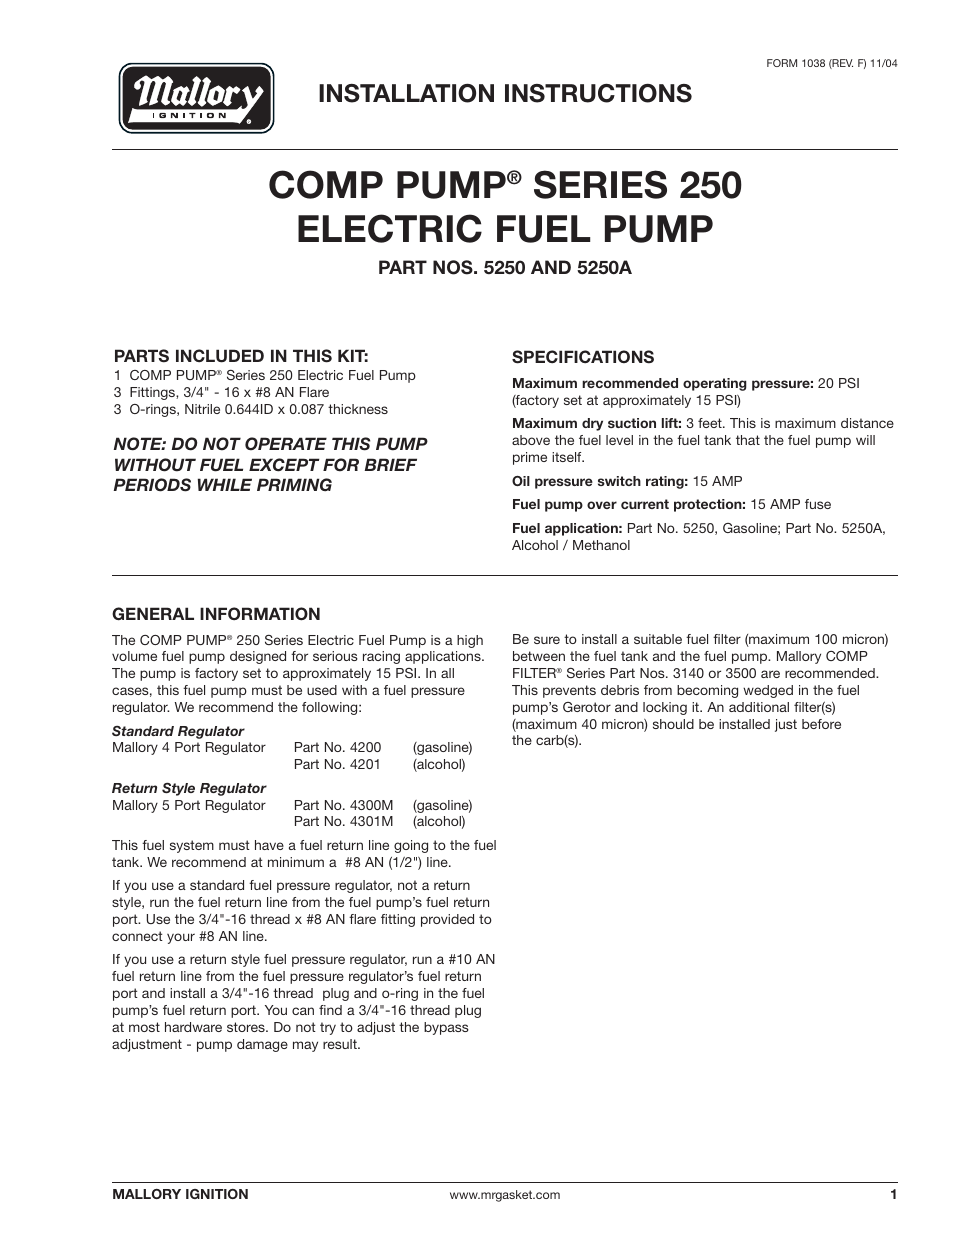 medium resolution of mallory ignition mallory comp pump series 250 electric fuel pump 5250 5250a user manual 4 pages